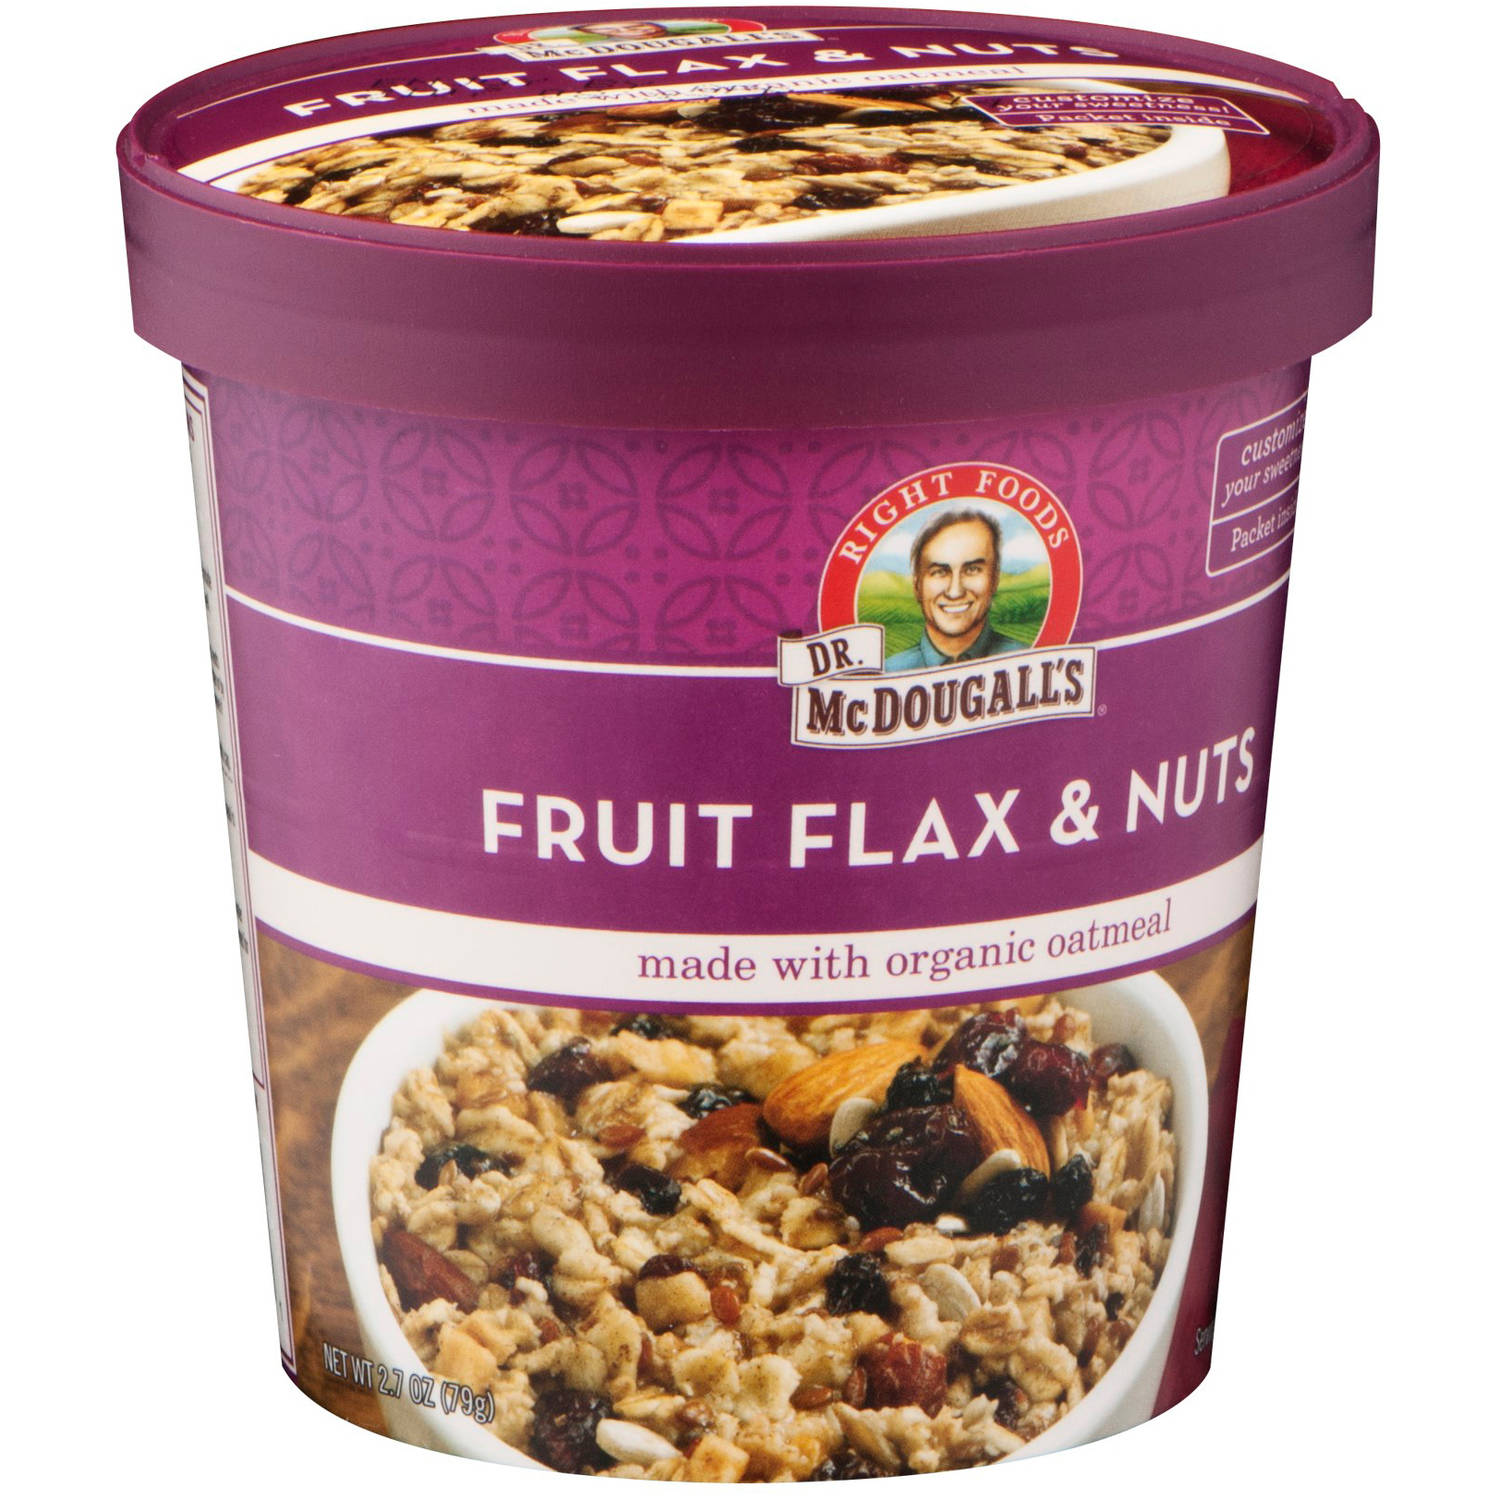 Dr. McDougall's Right Foods Fruits Flax & Nuts, 2.7 oz, (Pack of 6)